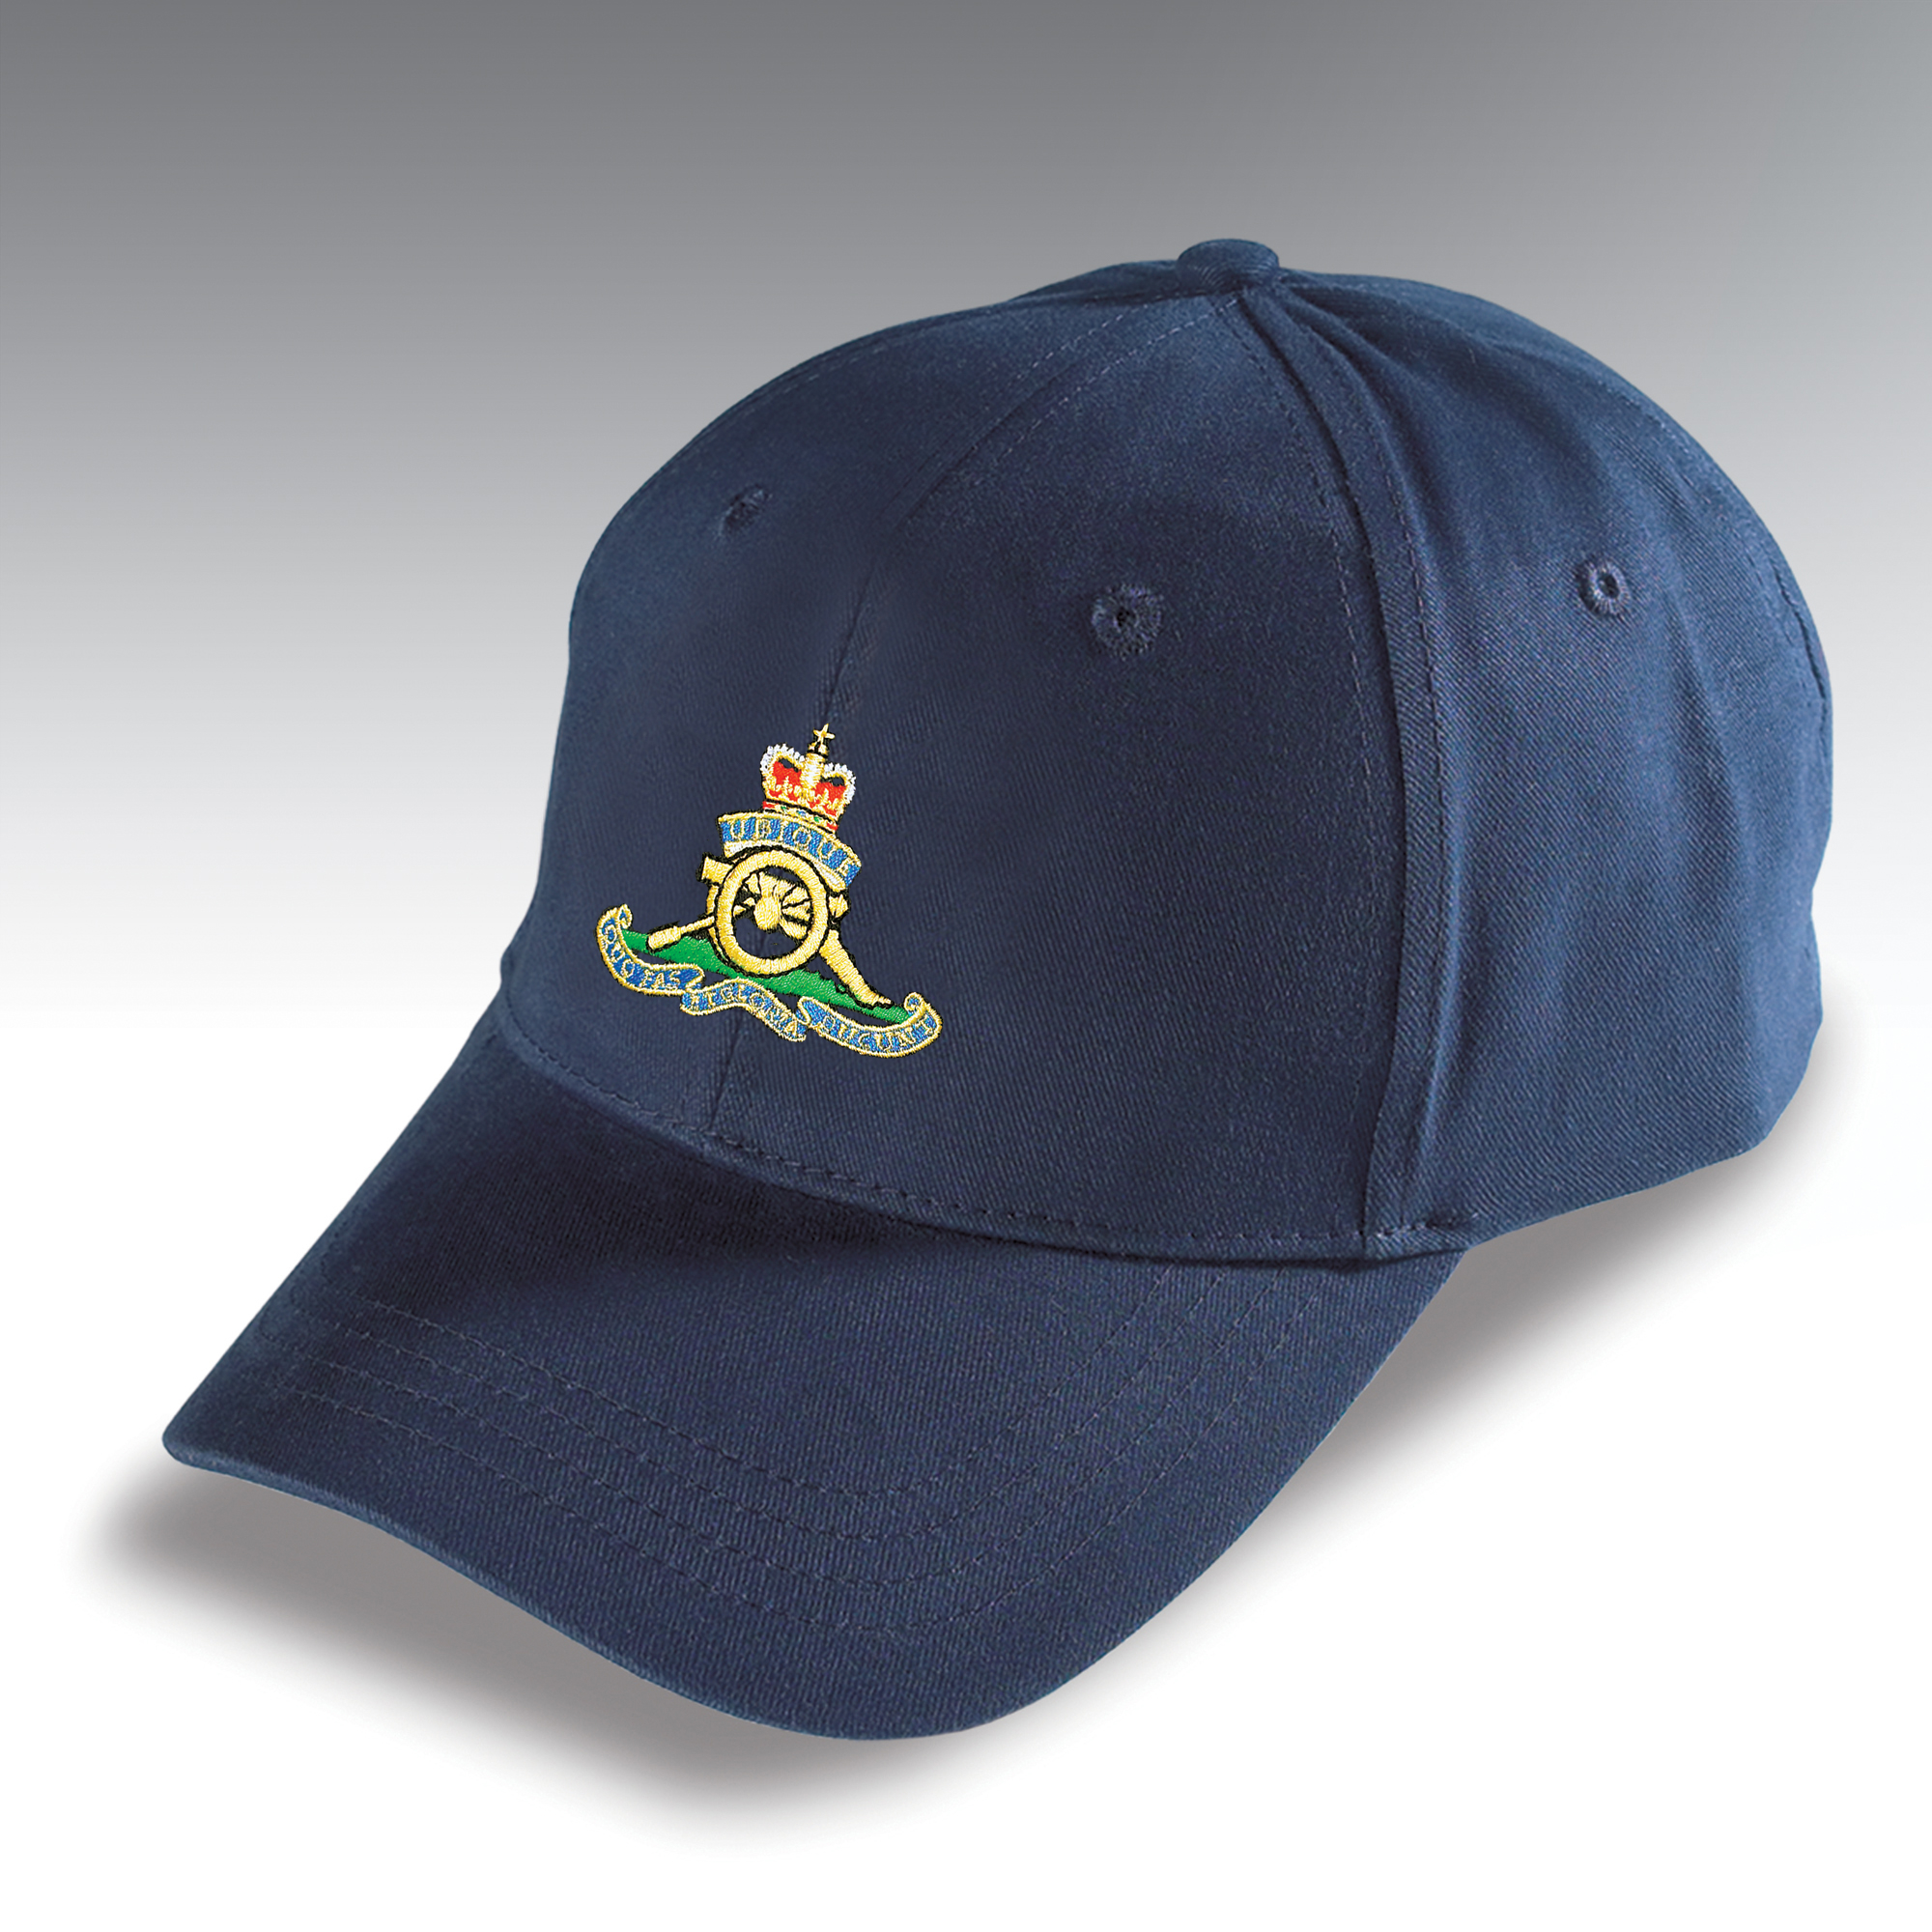 25bbbbad05e Embroidered Navy Blue Baseball Hat